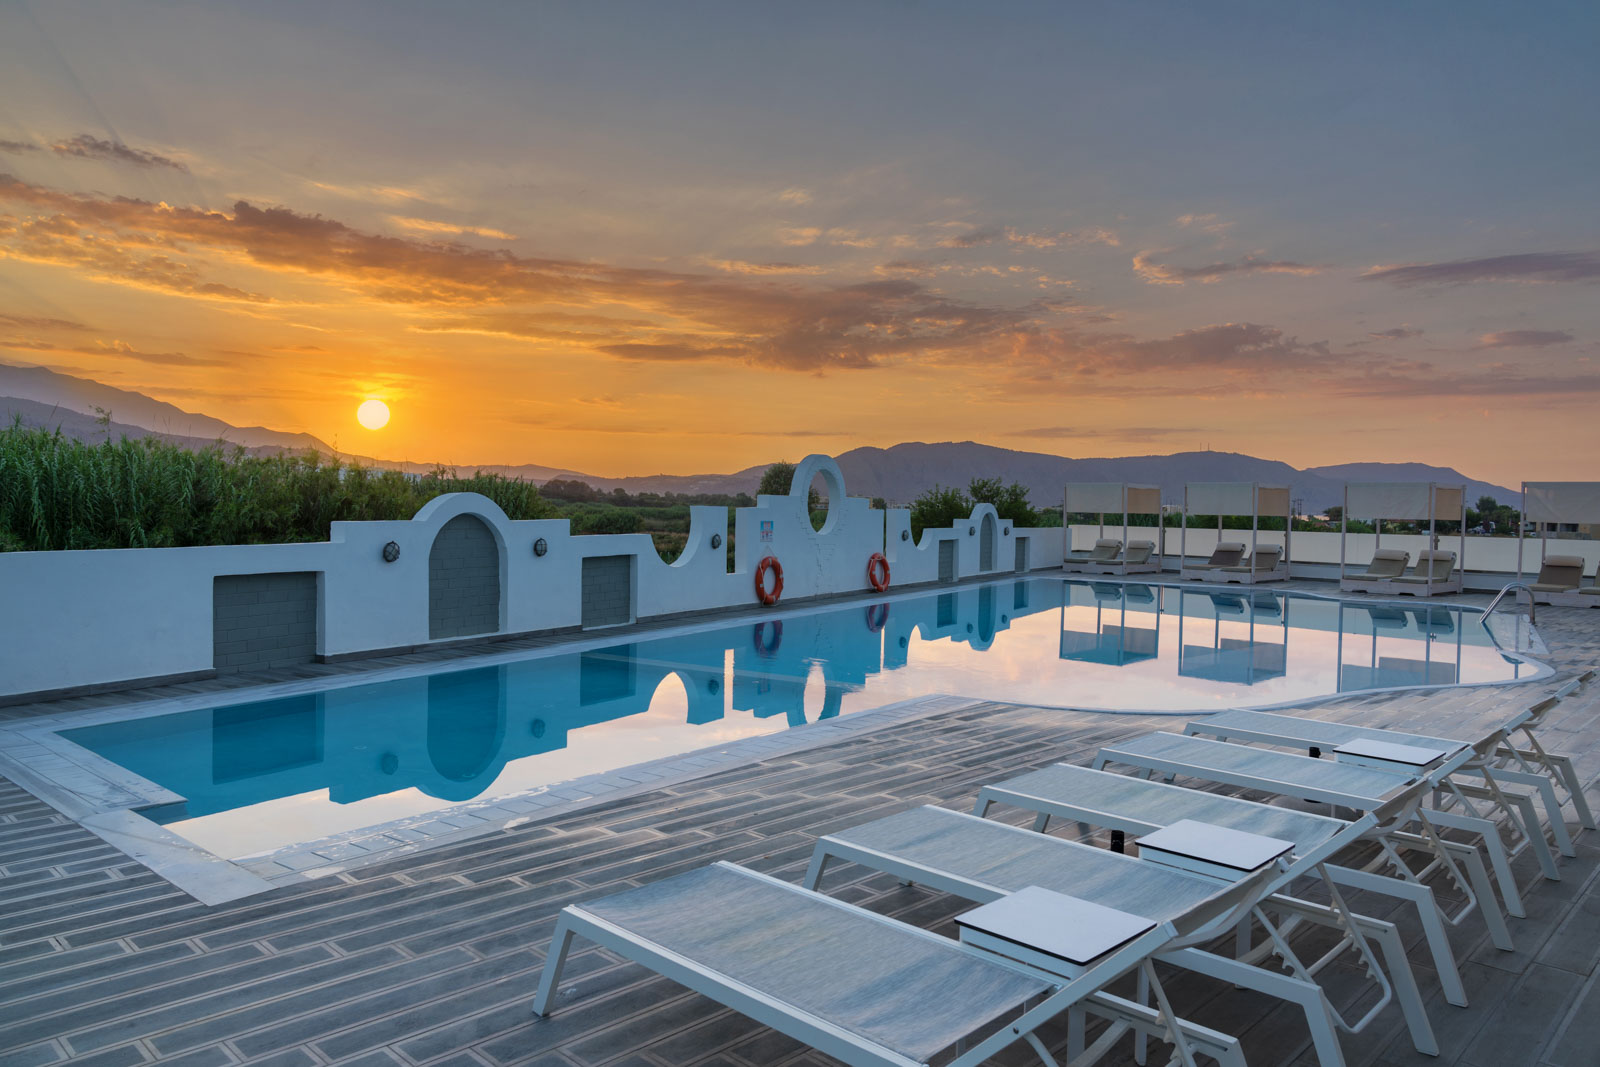 Pool View In Crete - Hotel Apollo